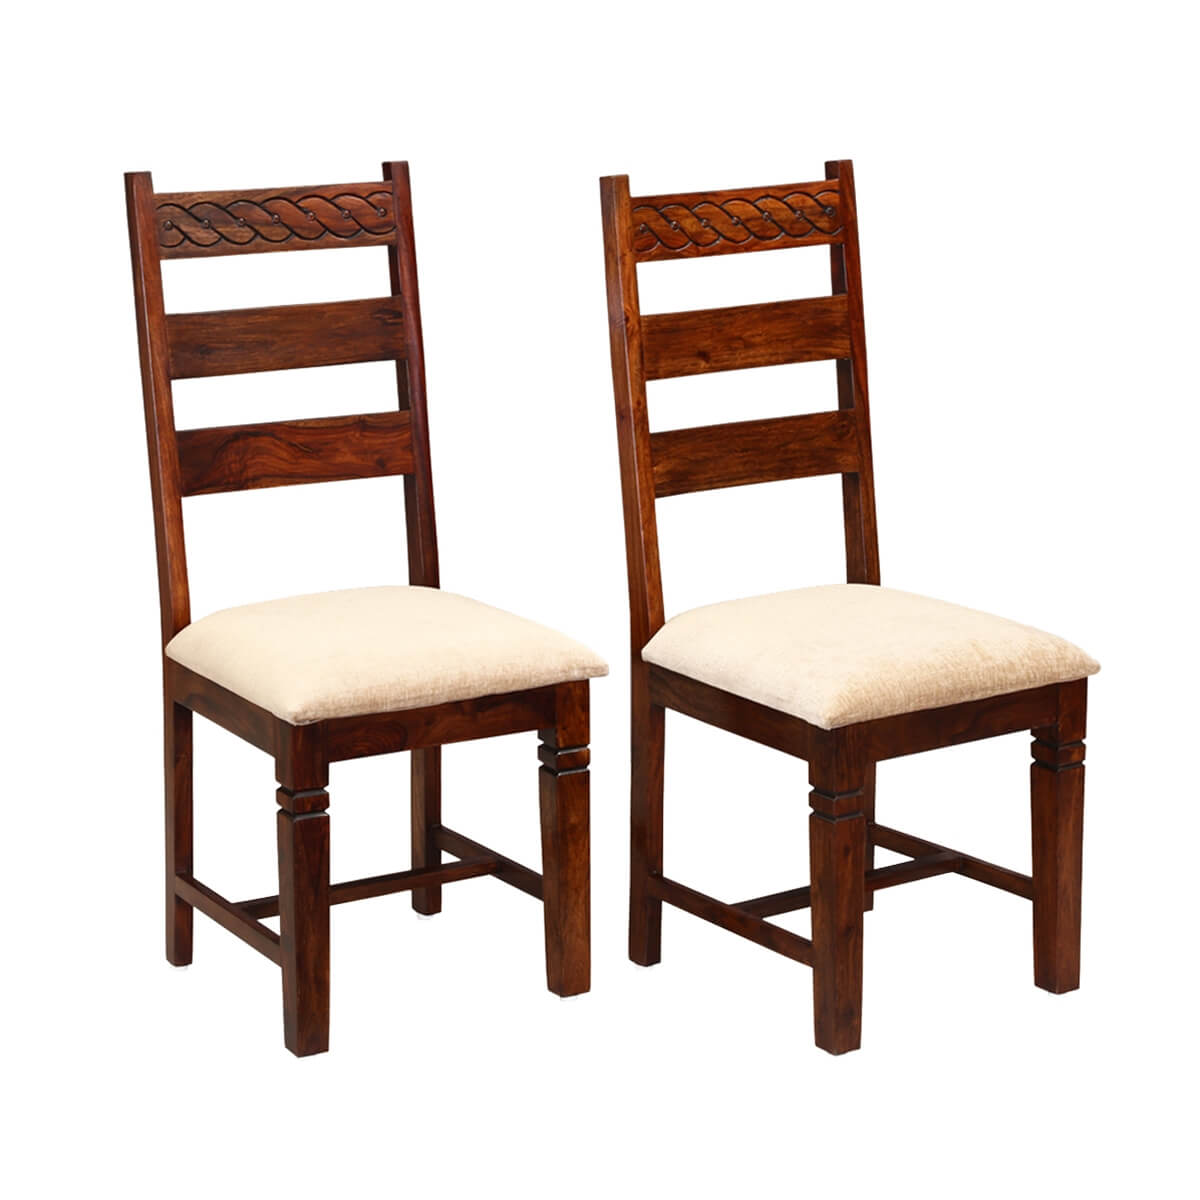 unfinished ladder back chairs la z boy office chair big and tall handcrafted solid wood 2pc upholstered